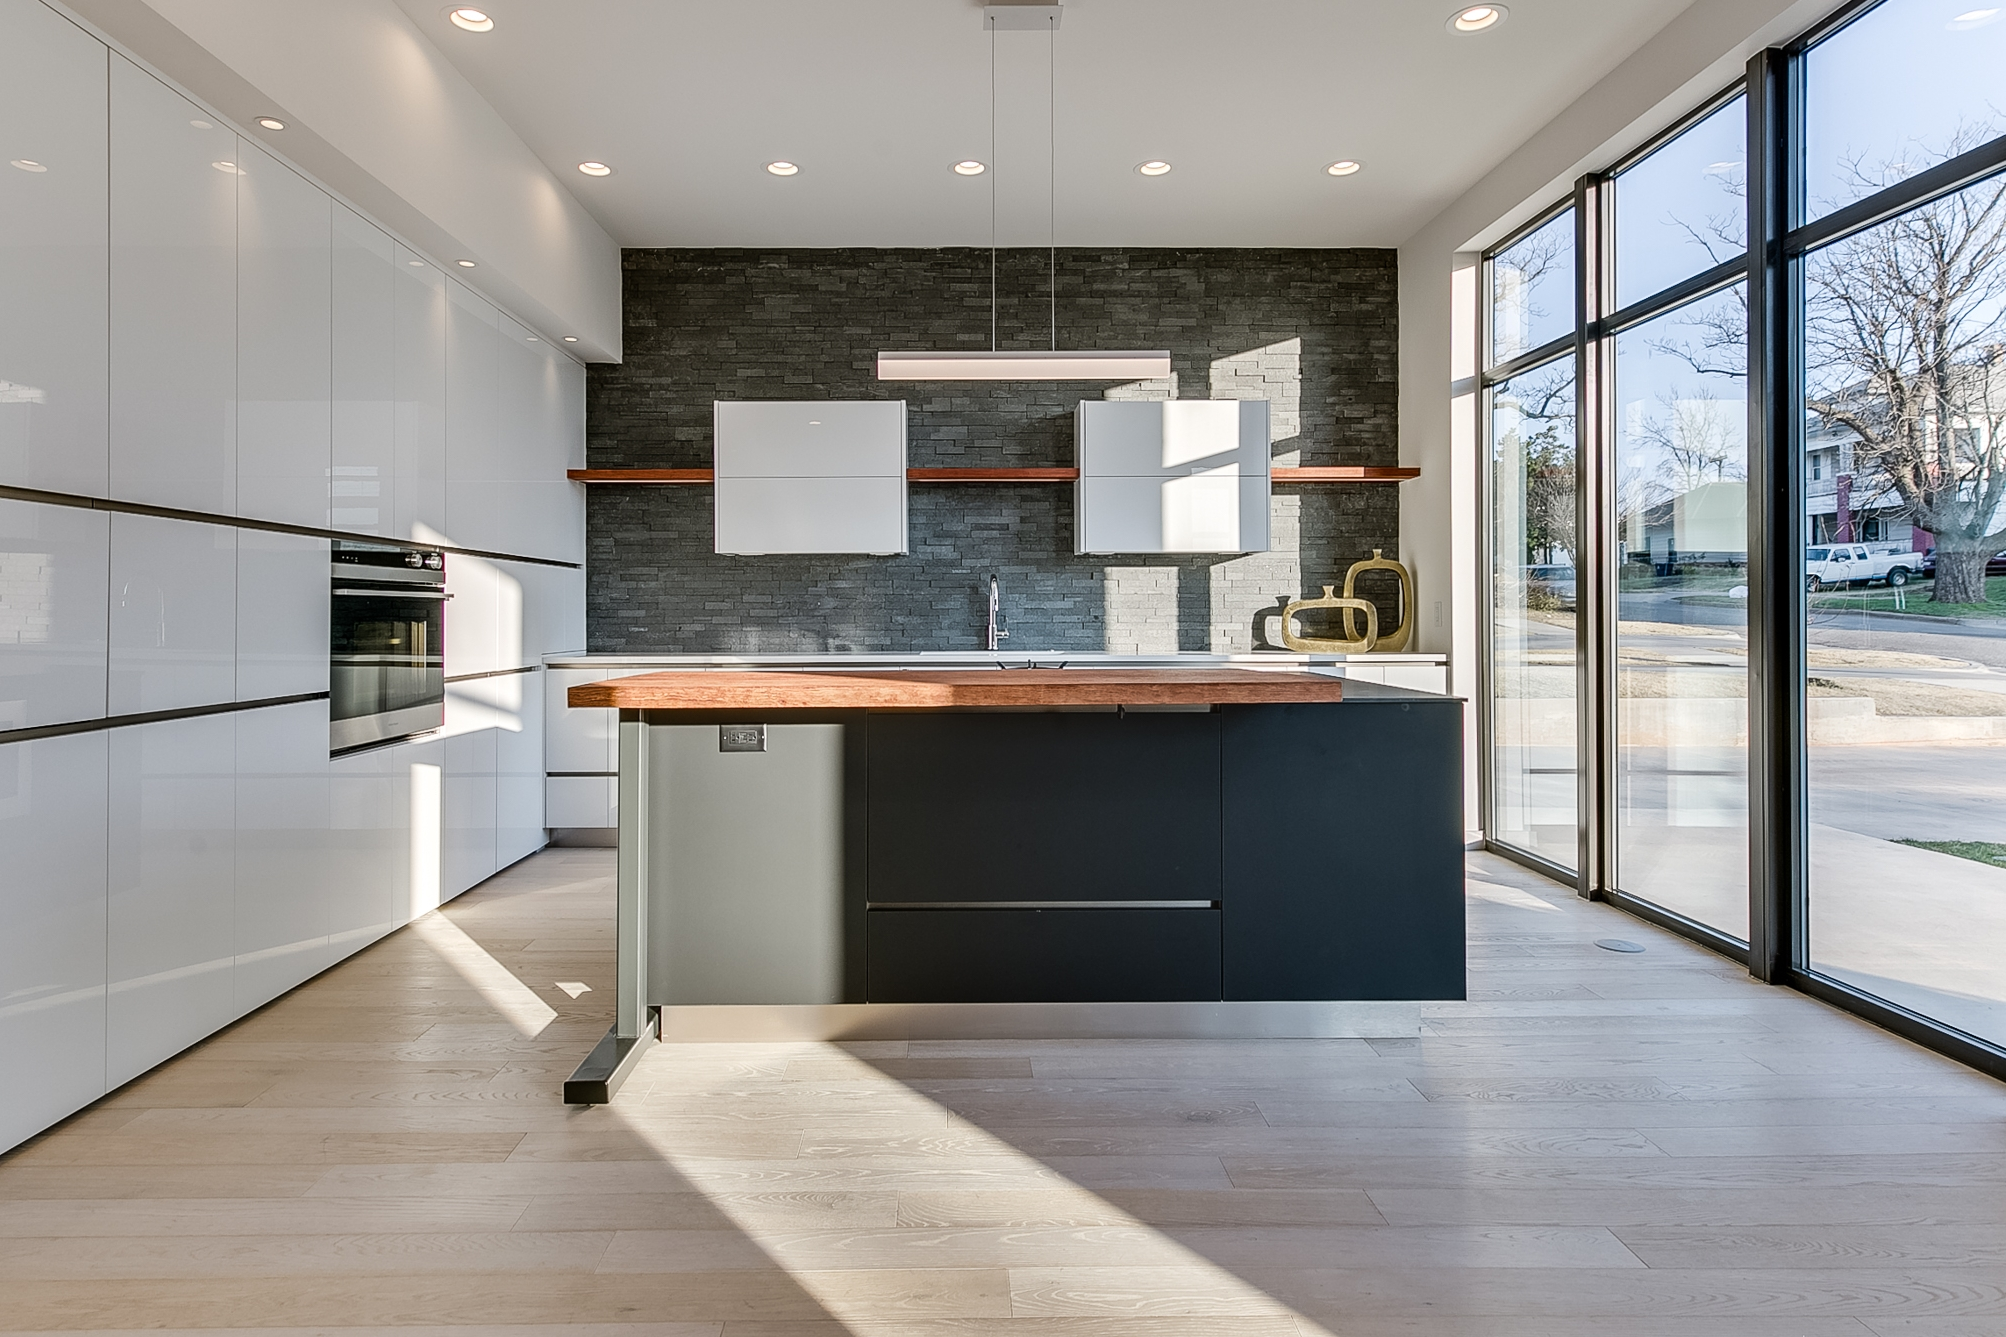 Kitchen - Clear counters of food, dish racks and cutting boardsRemove magnets, photos and papers from refrigeratorHide garbage cans, brooms, mops etc.Remove any large countertop appliancesRemove dishes from sink